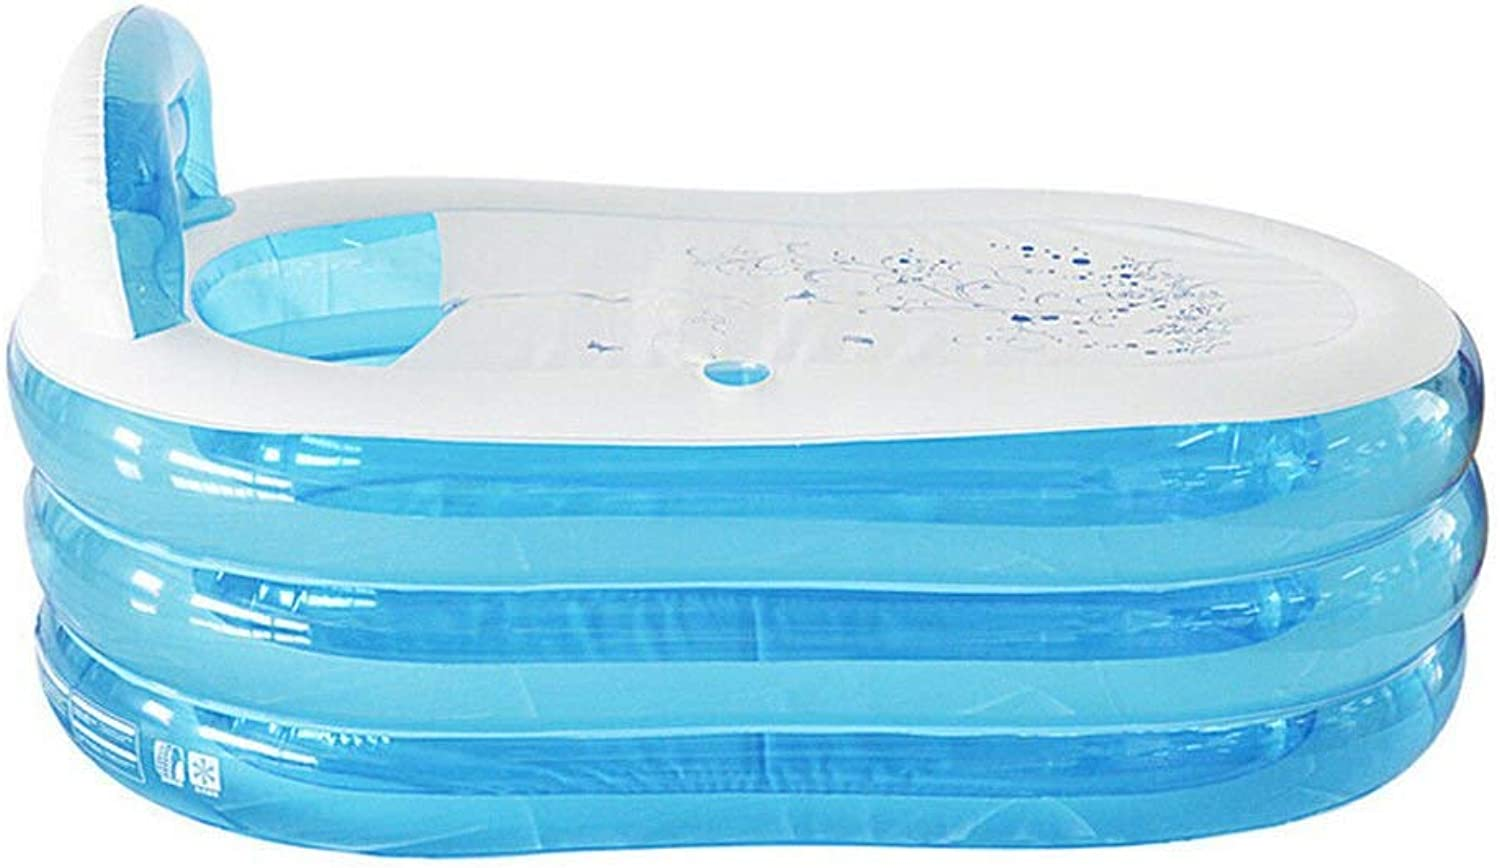 Giow Inflatable bath for shower and bath, thick bath, bluee, 130  70  70cm